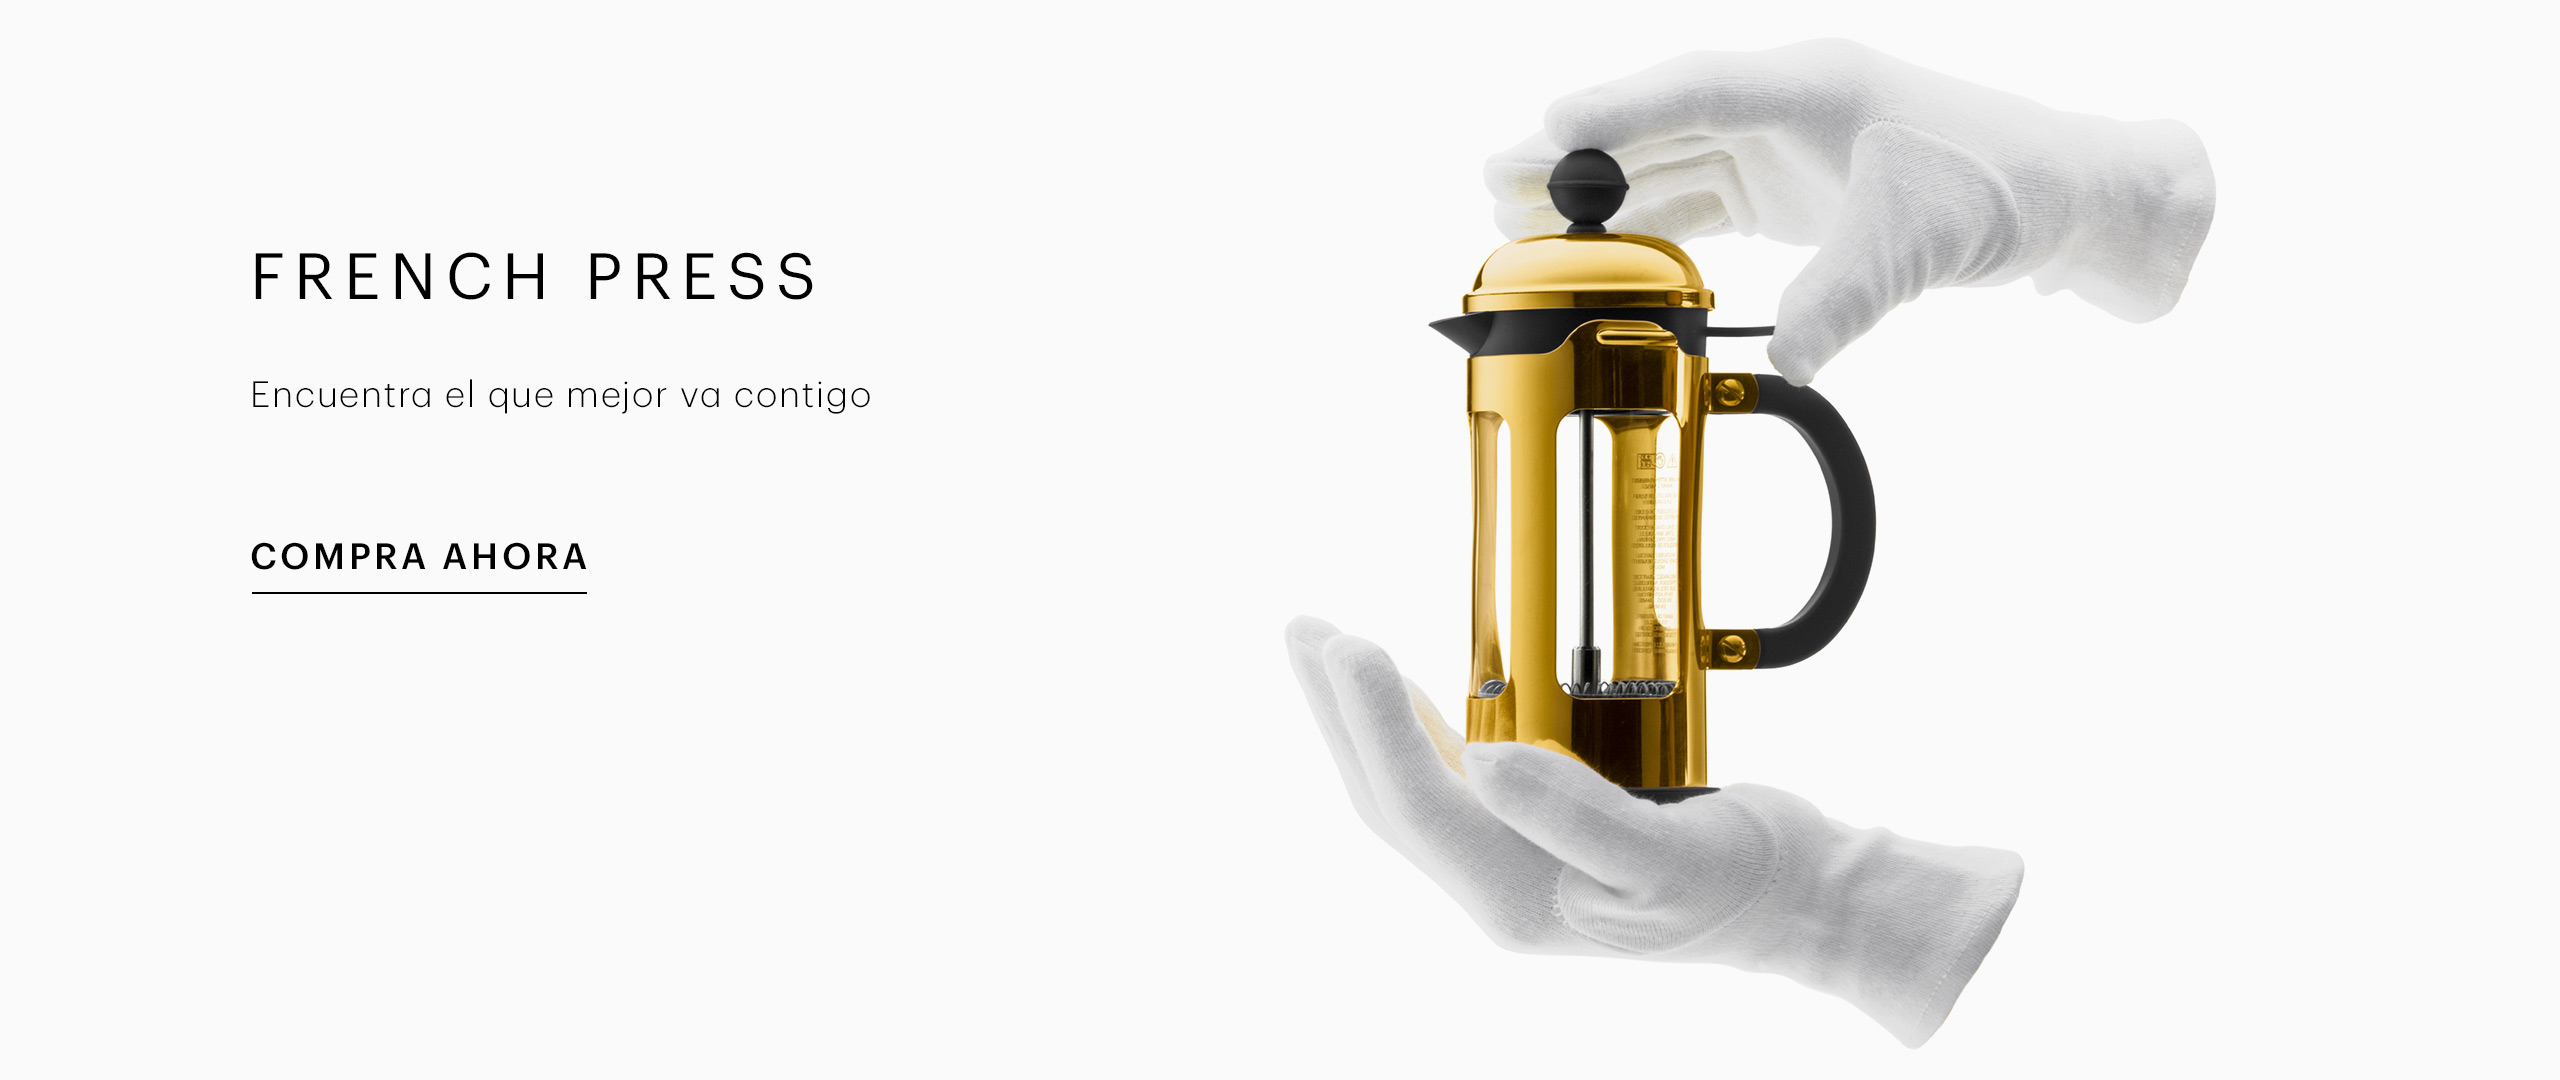 BEU [ES] - Perfect French Press